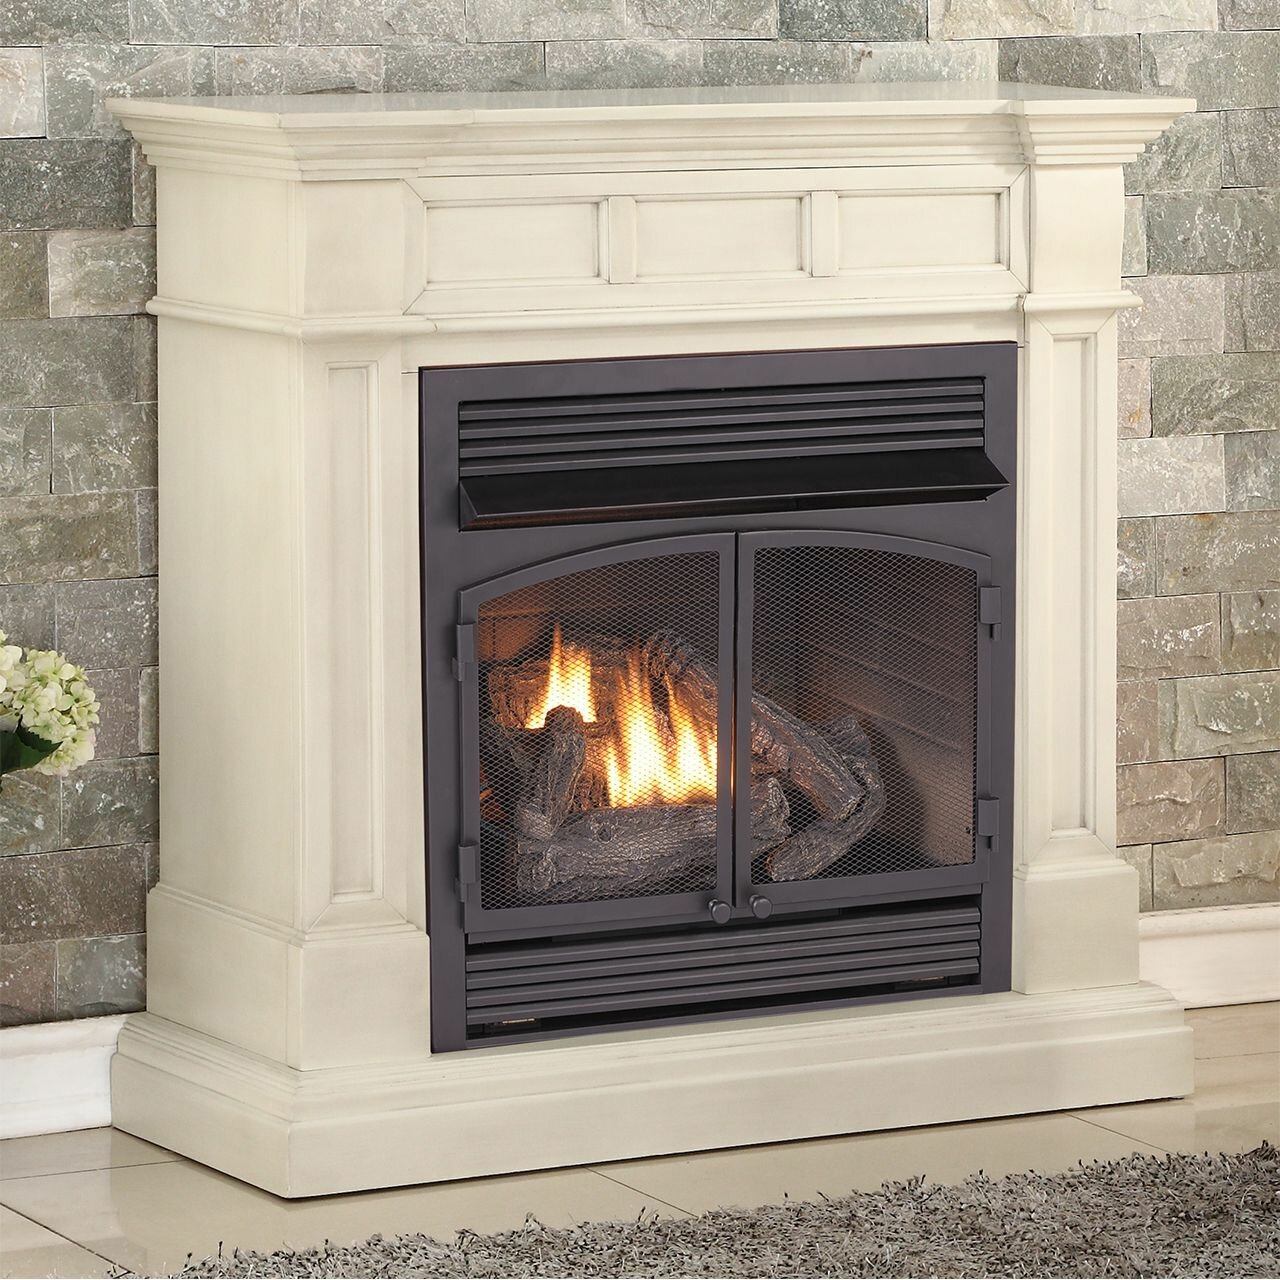 Duluth Forge Vent Free Freestanding Natural Gas Propane Fireplace